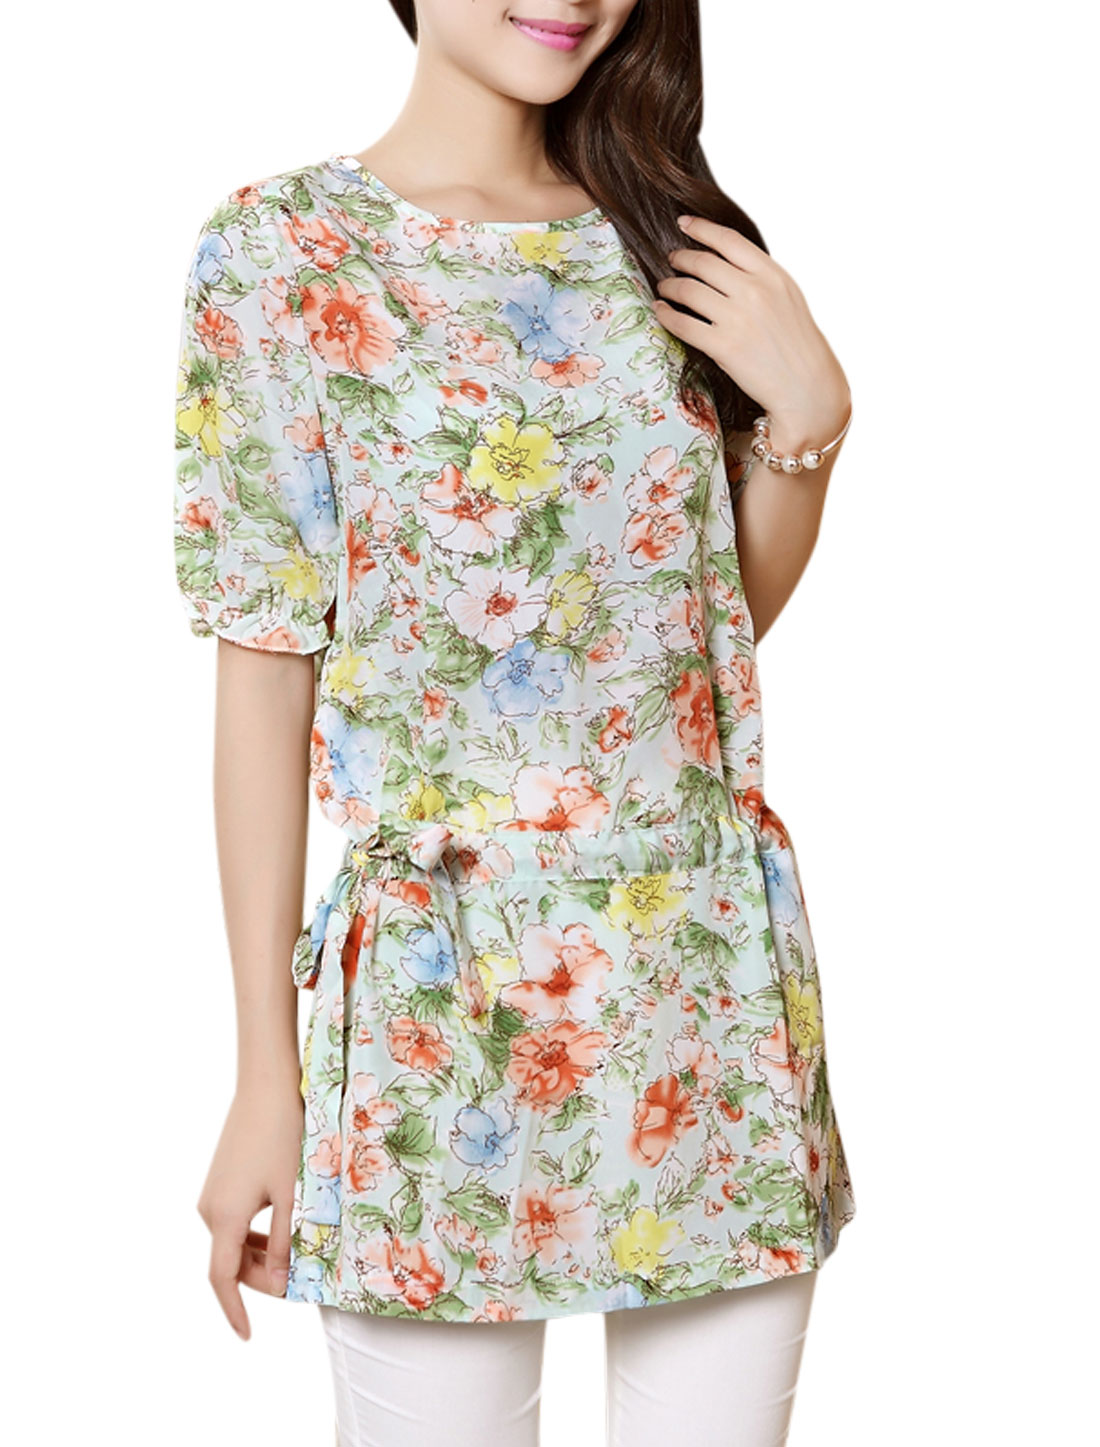 Lady Short Sleeve Drawcord Waist Floral Pattern Tunic Blouse Aqua XS